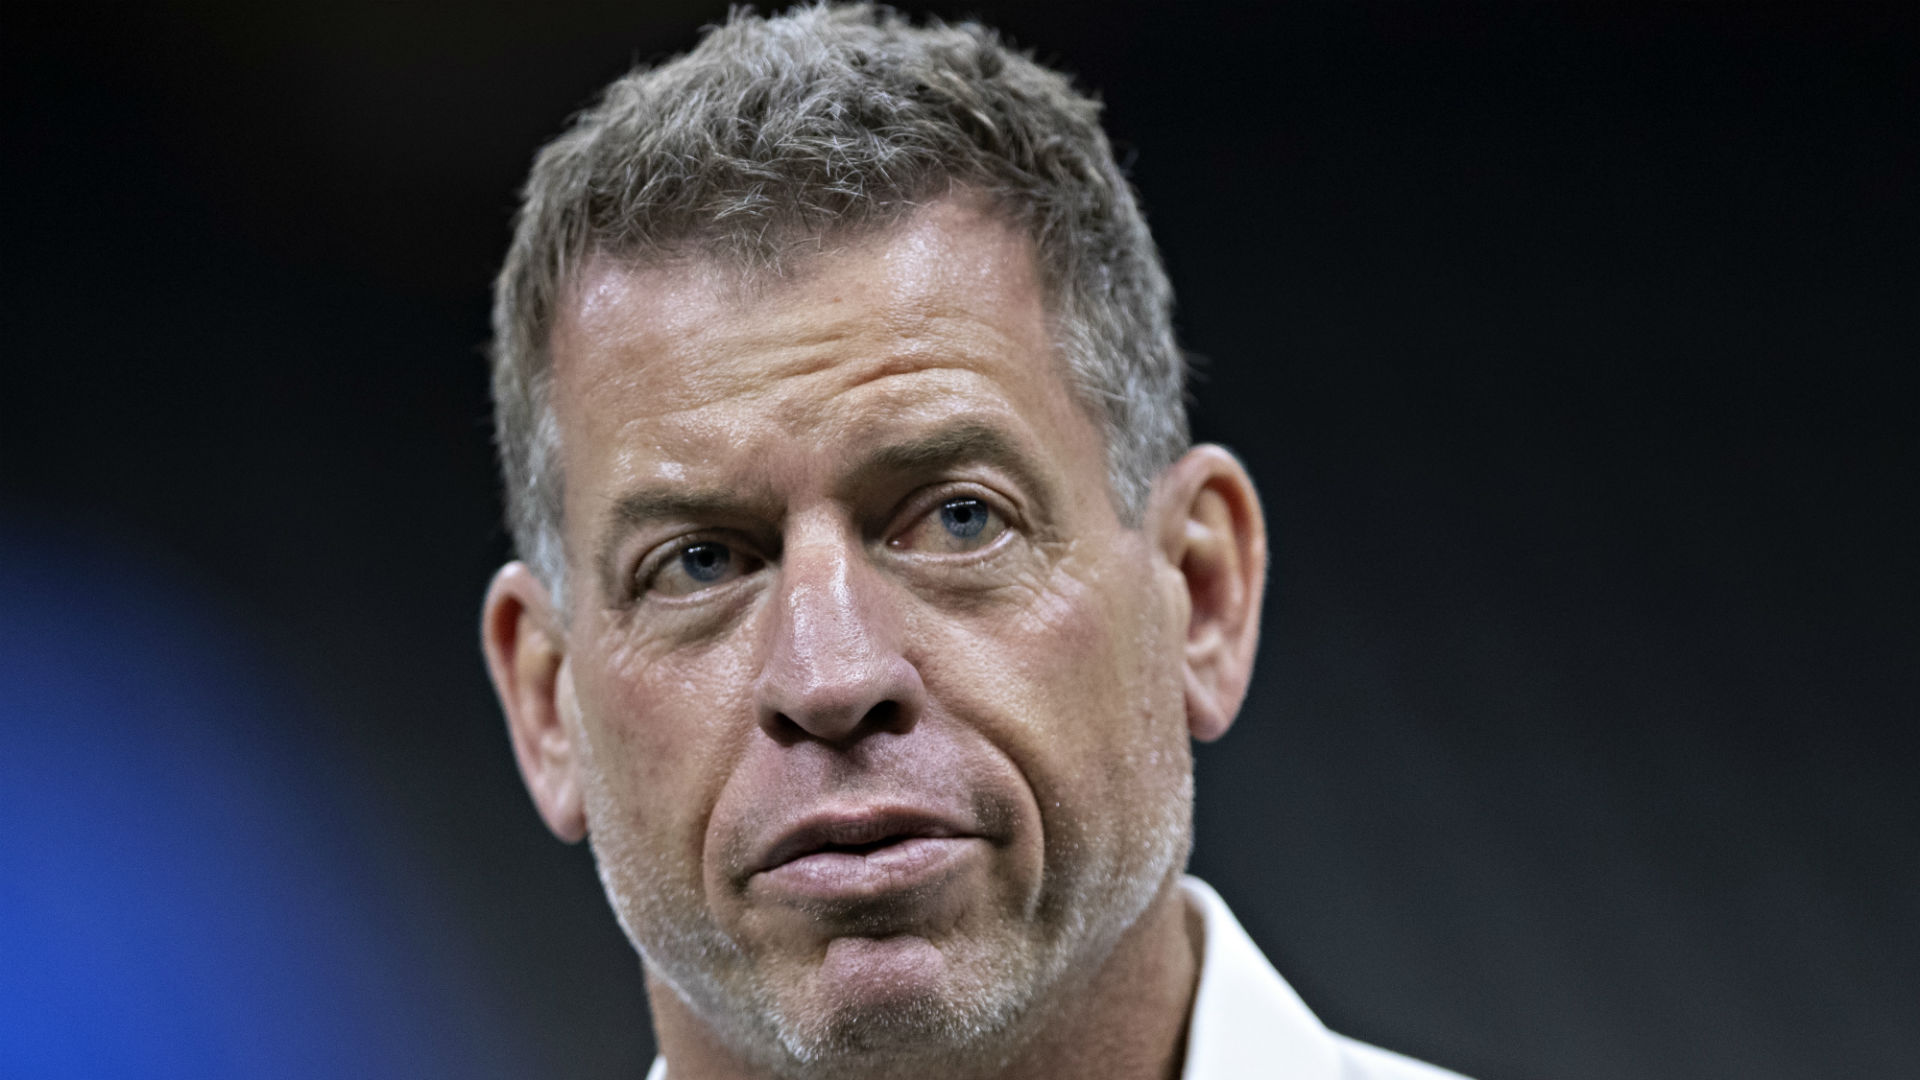 Dallas Cowboys legend Troy Aikman would like to work in an NFL front office - but is not expecting his former team to give him a shot.